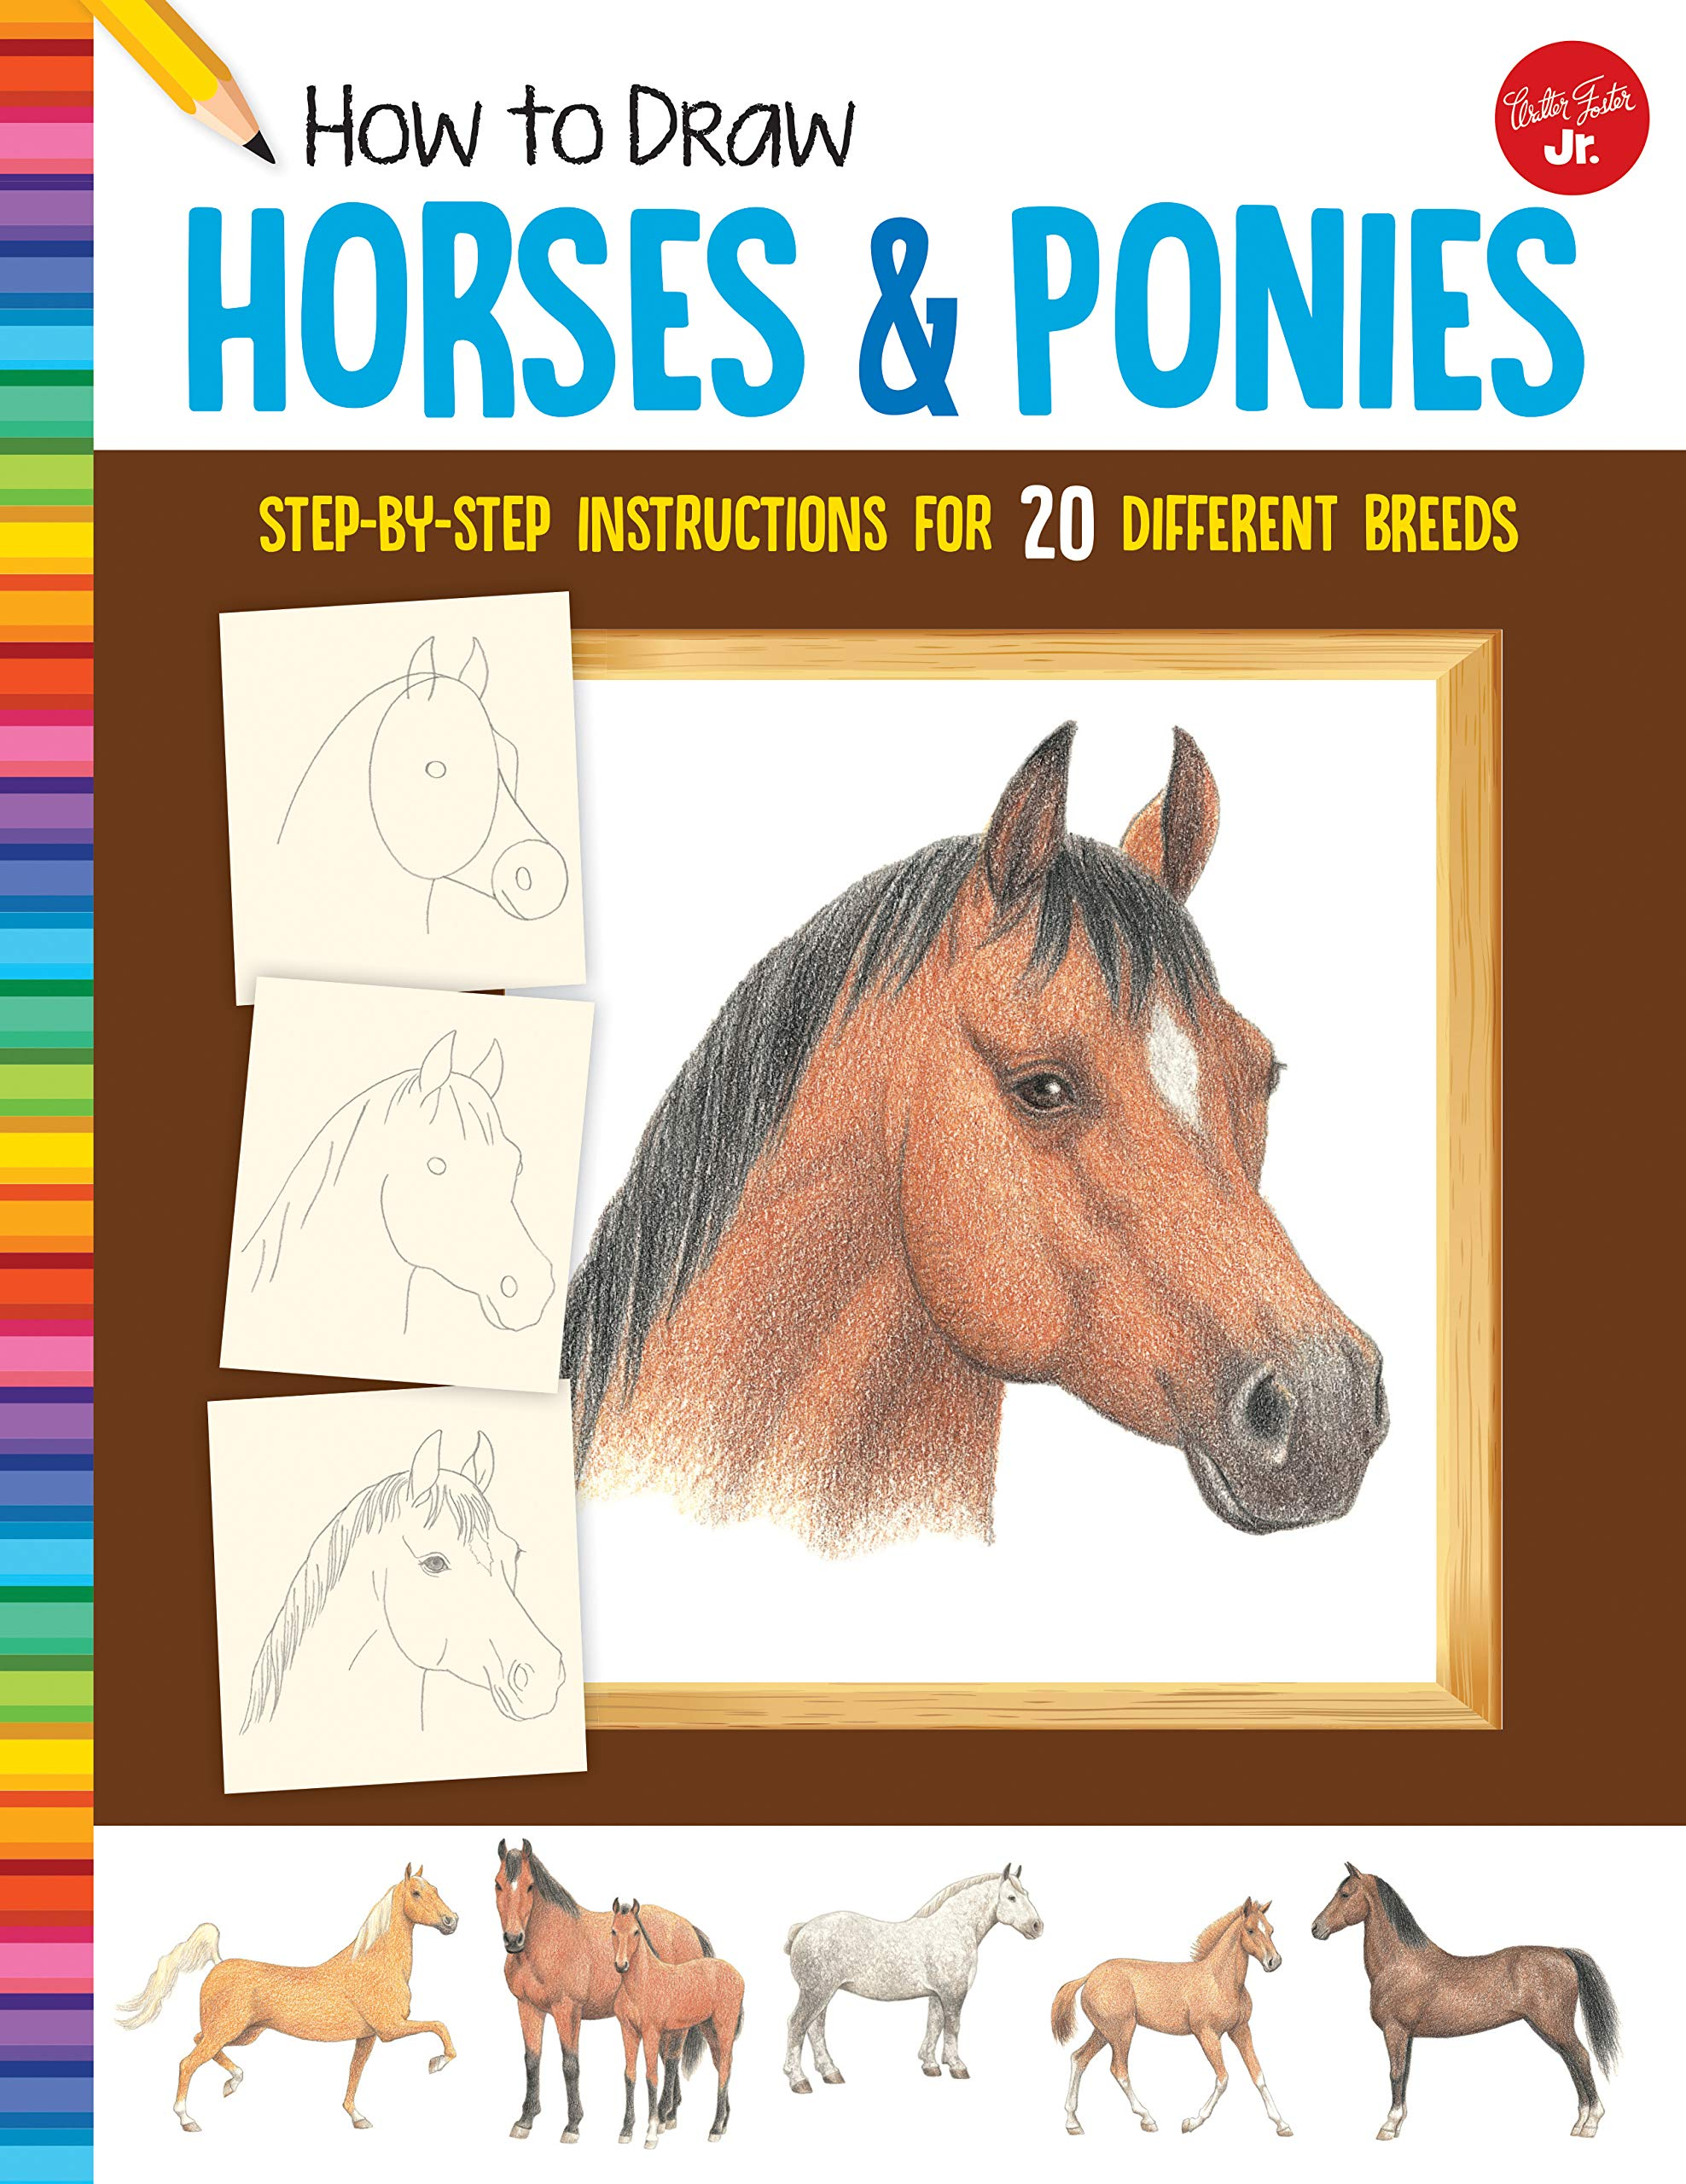 How To Draw Horses And Ponies  Step By Step Instructions For 20 Different Breeds